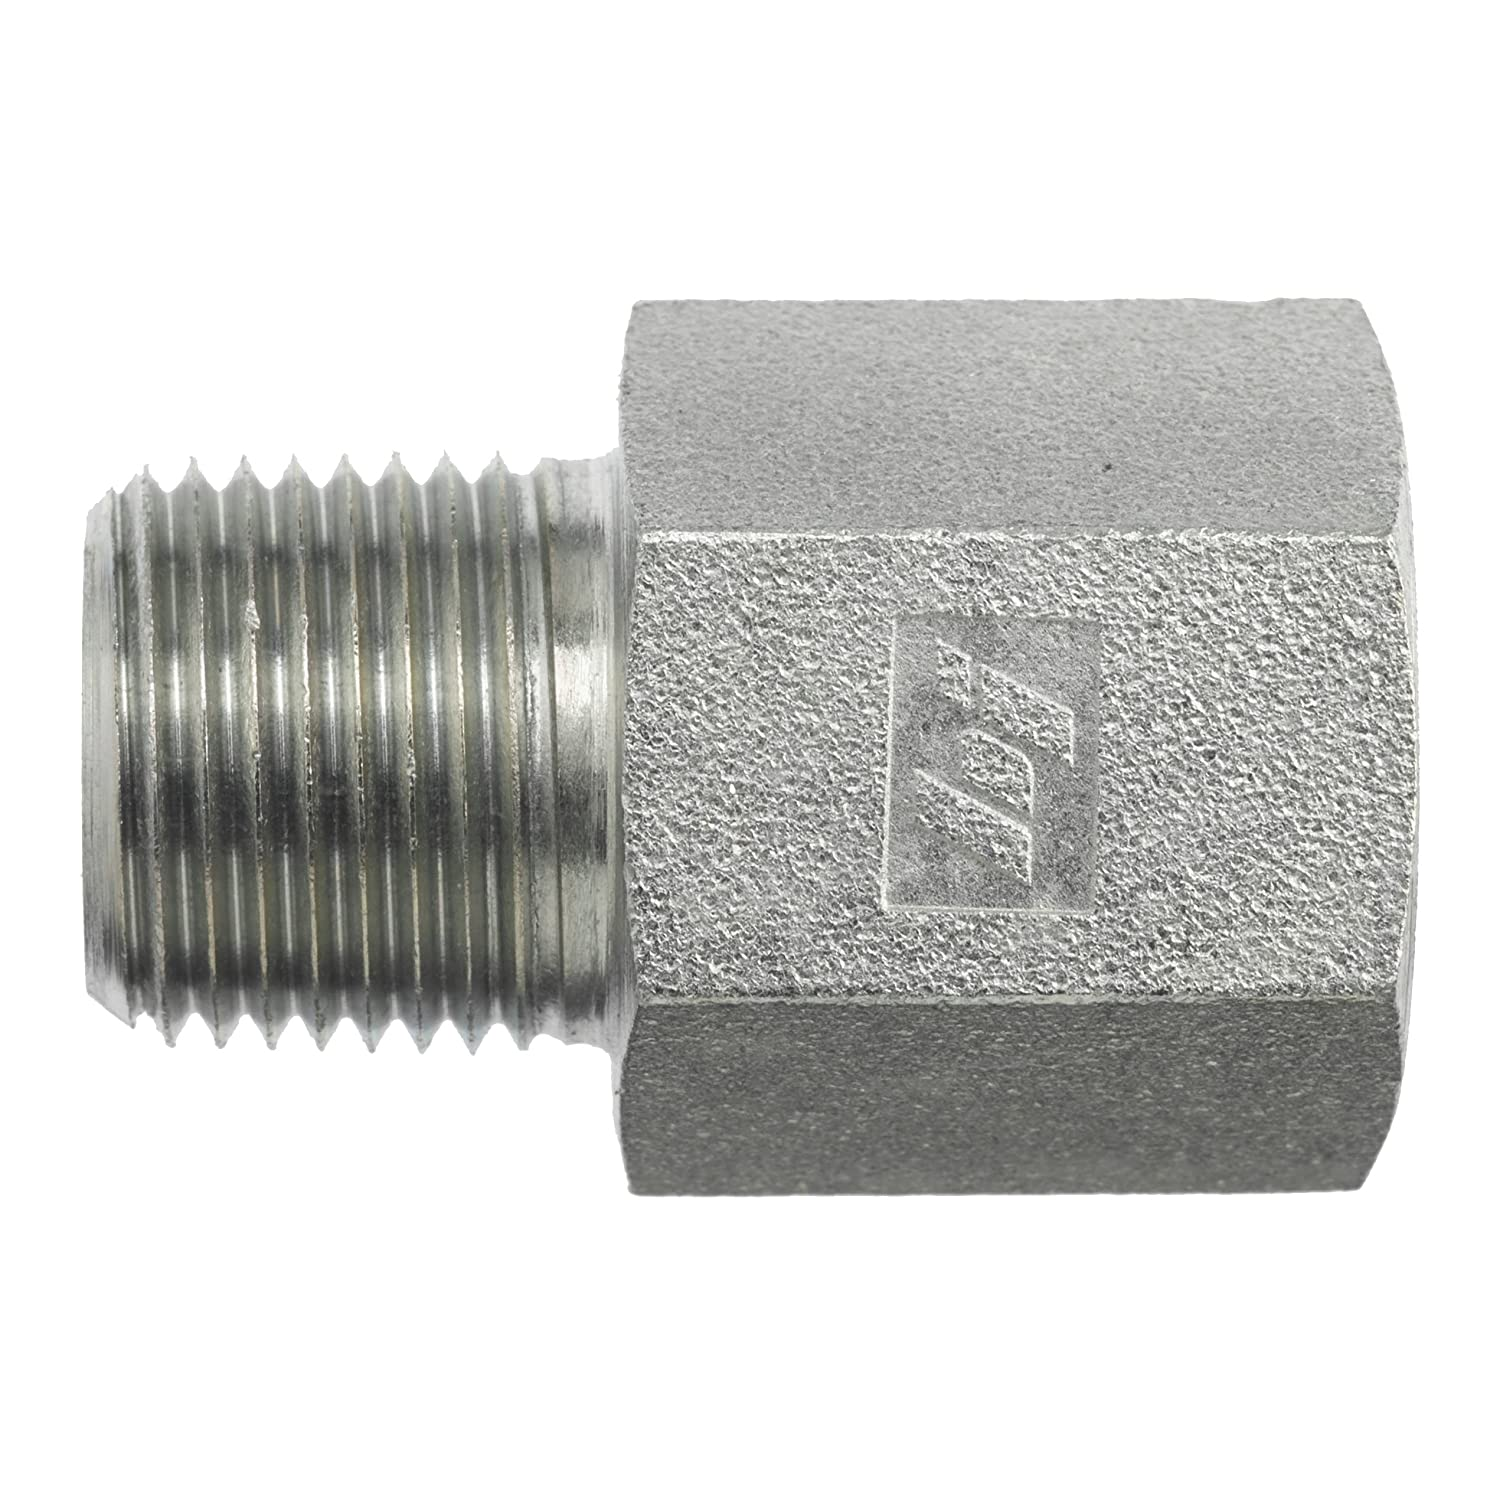 Brennan Industries 5405-20-32 Steel Straight Expander Fitting 1-1//4-11-1//2 NPTF x 2-11-1//2 NPTF Thread 1-1//4-11-1//2 NPTF x 2-11-1//2 NPTF Thread Inc.